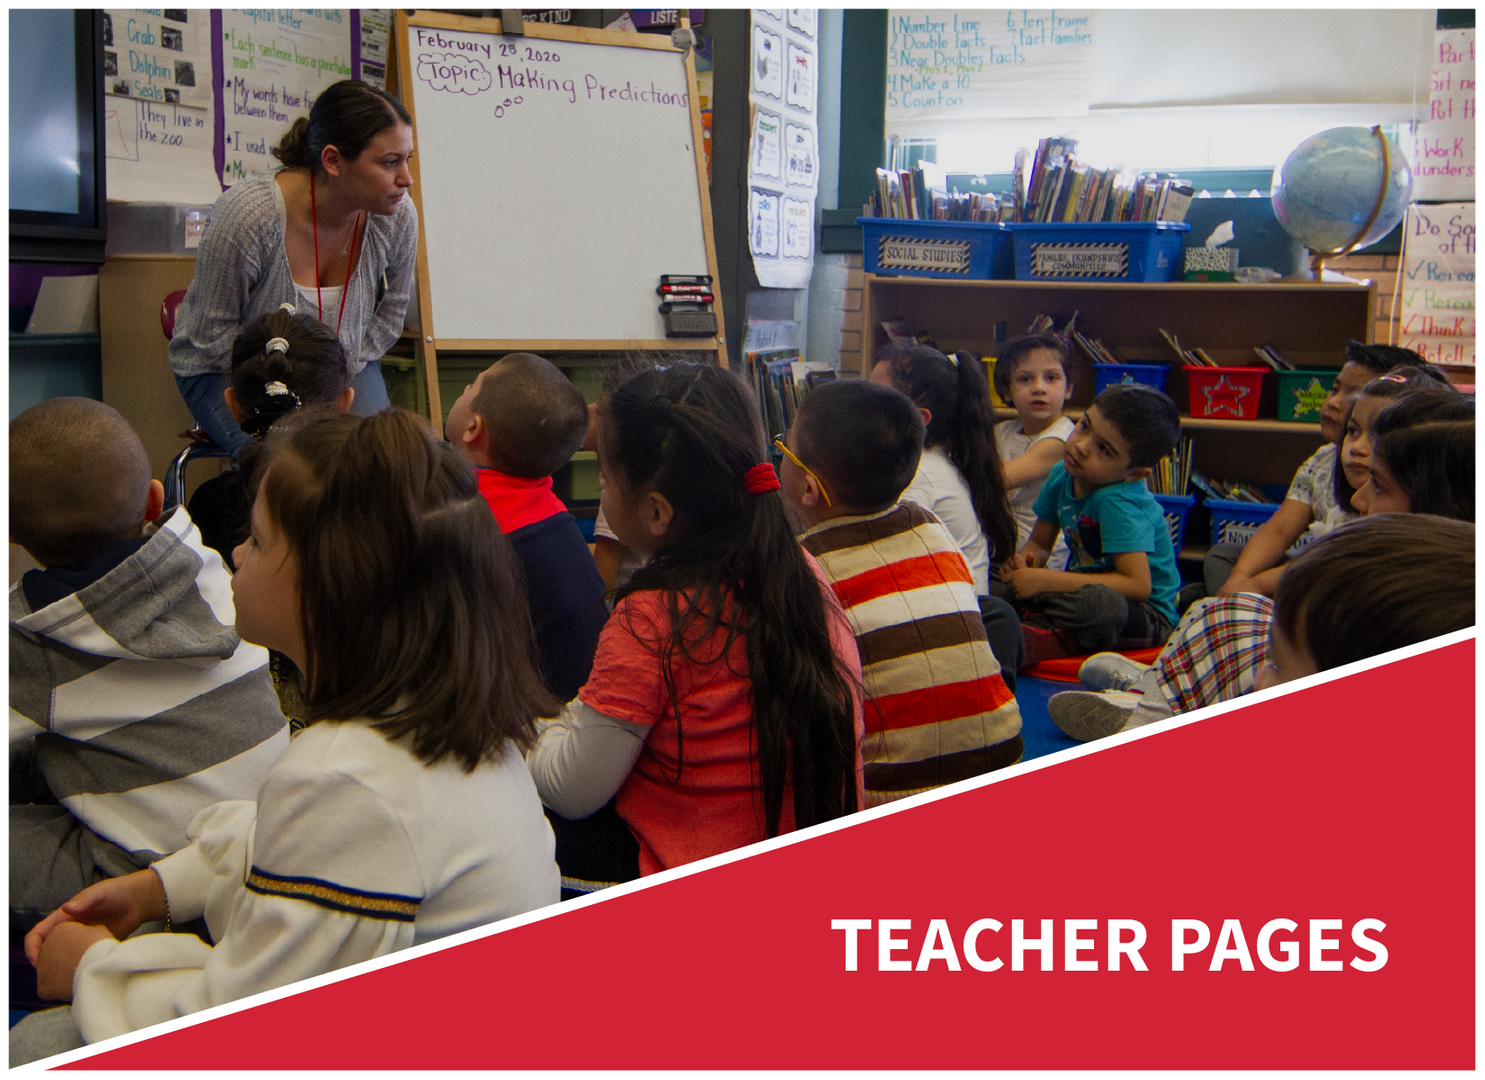 Teacher pages: teacher leading class